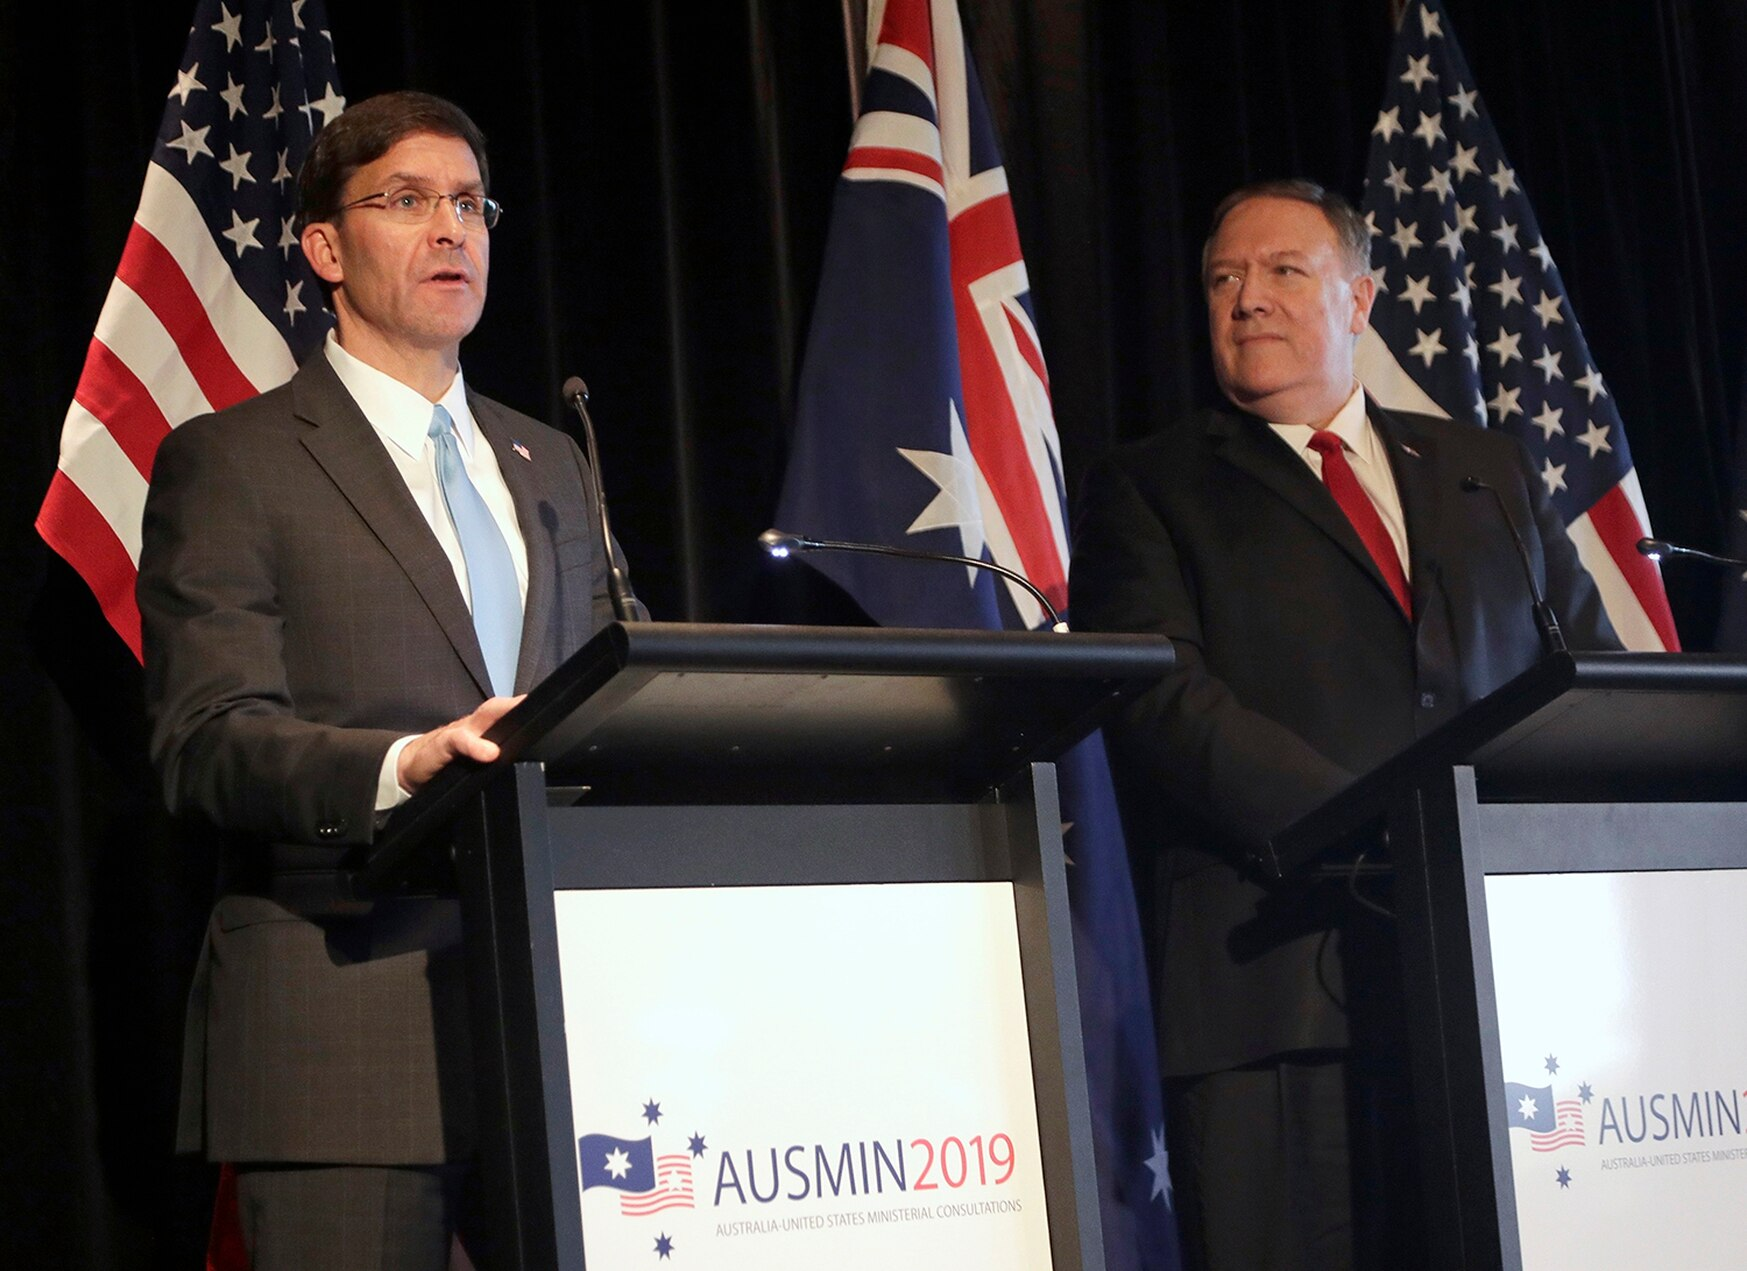 U.S. Secretary of Defense Mark Esper, left, and U.S. Secretary of State Mike Pompeo brief the media at a press conference following annual bilateral talks with Australian counterparts in Sydney, Australia, Sunday, Aug. 4, 2019. (Rick Rycroft/AP)